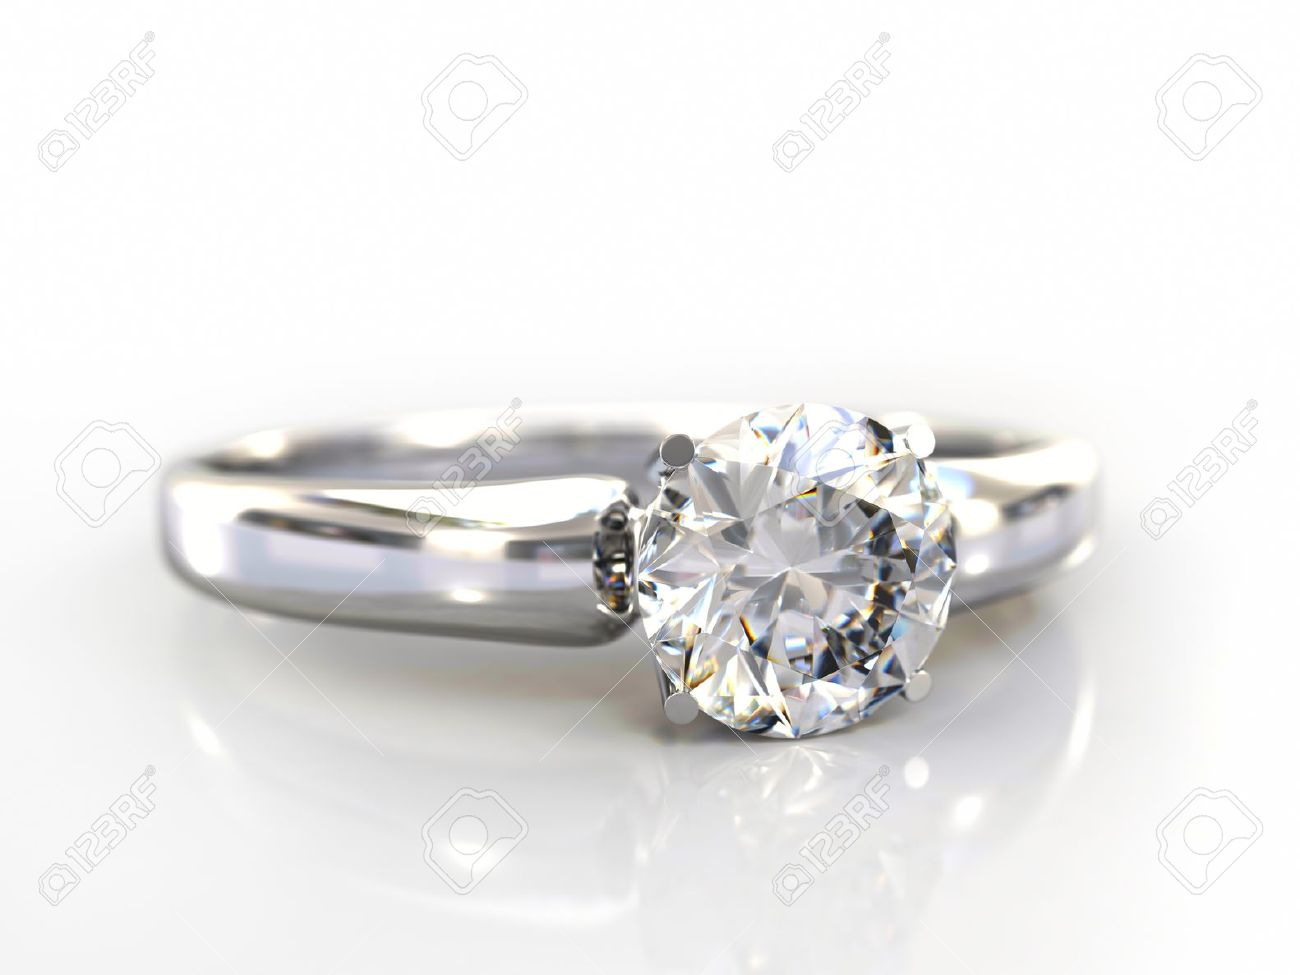 Diamond Ring Wedding Gift Isolated Close Up Of A White Gold Stock